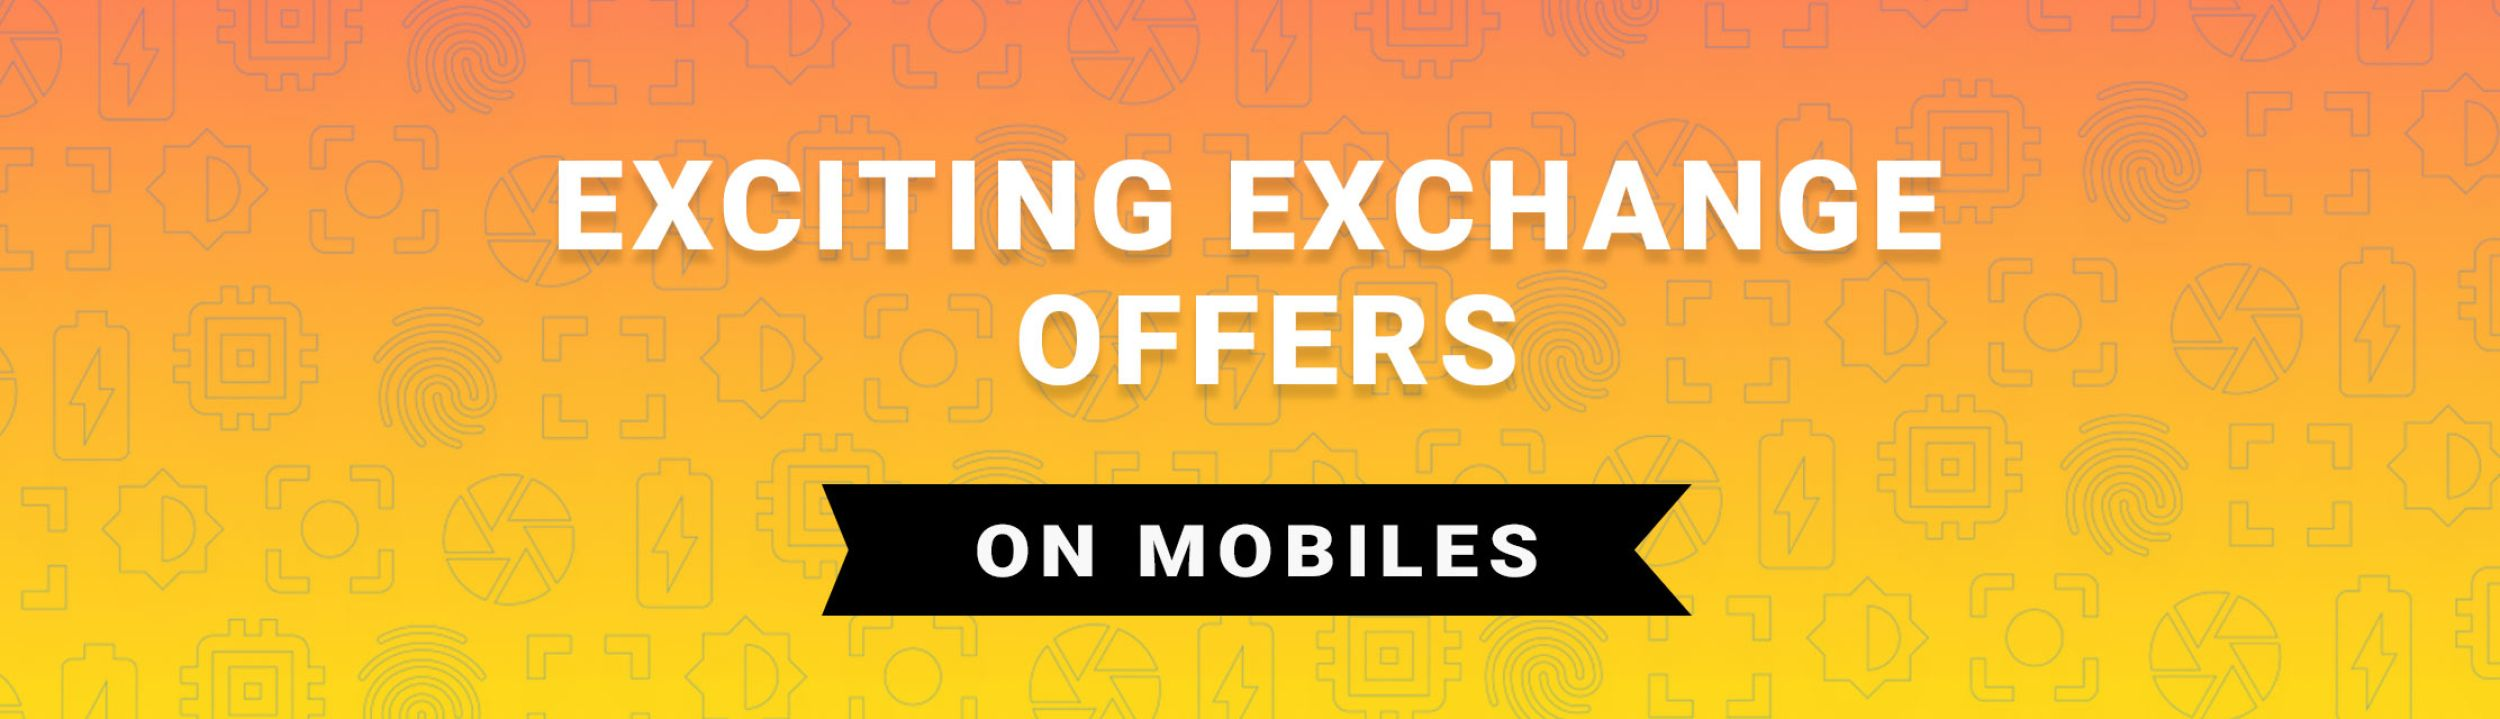 Mobile Exchange Offers - Exchange Your Old Mobile with Brand New ...